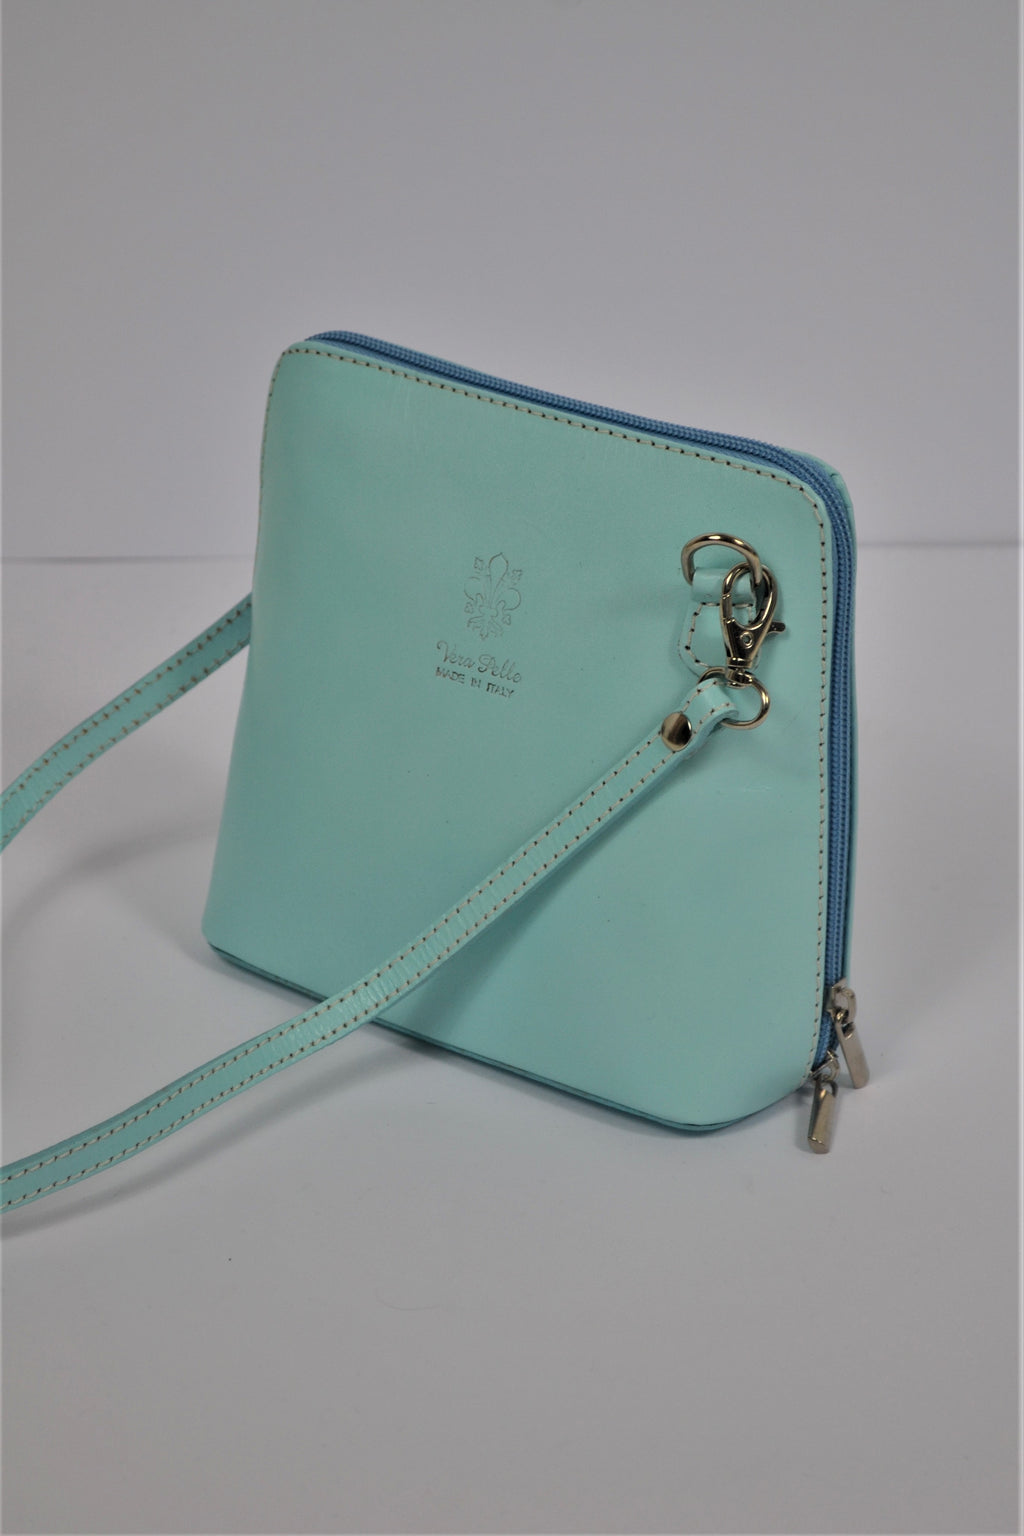 Husen Moda Light Green Leather Bag